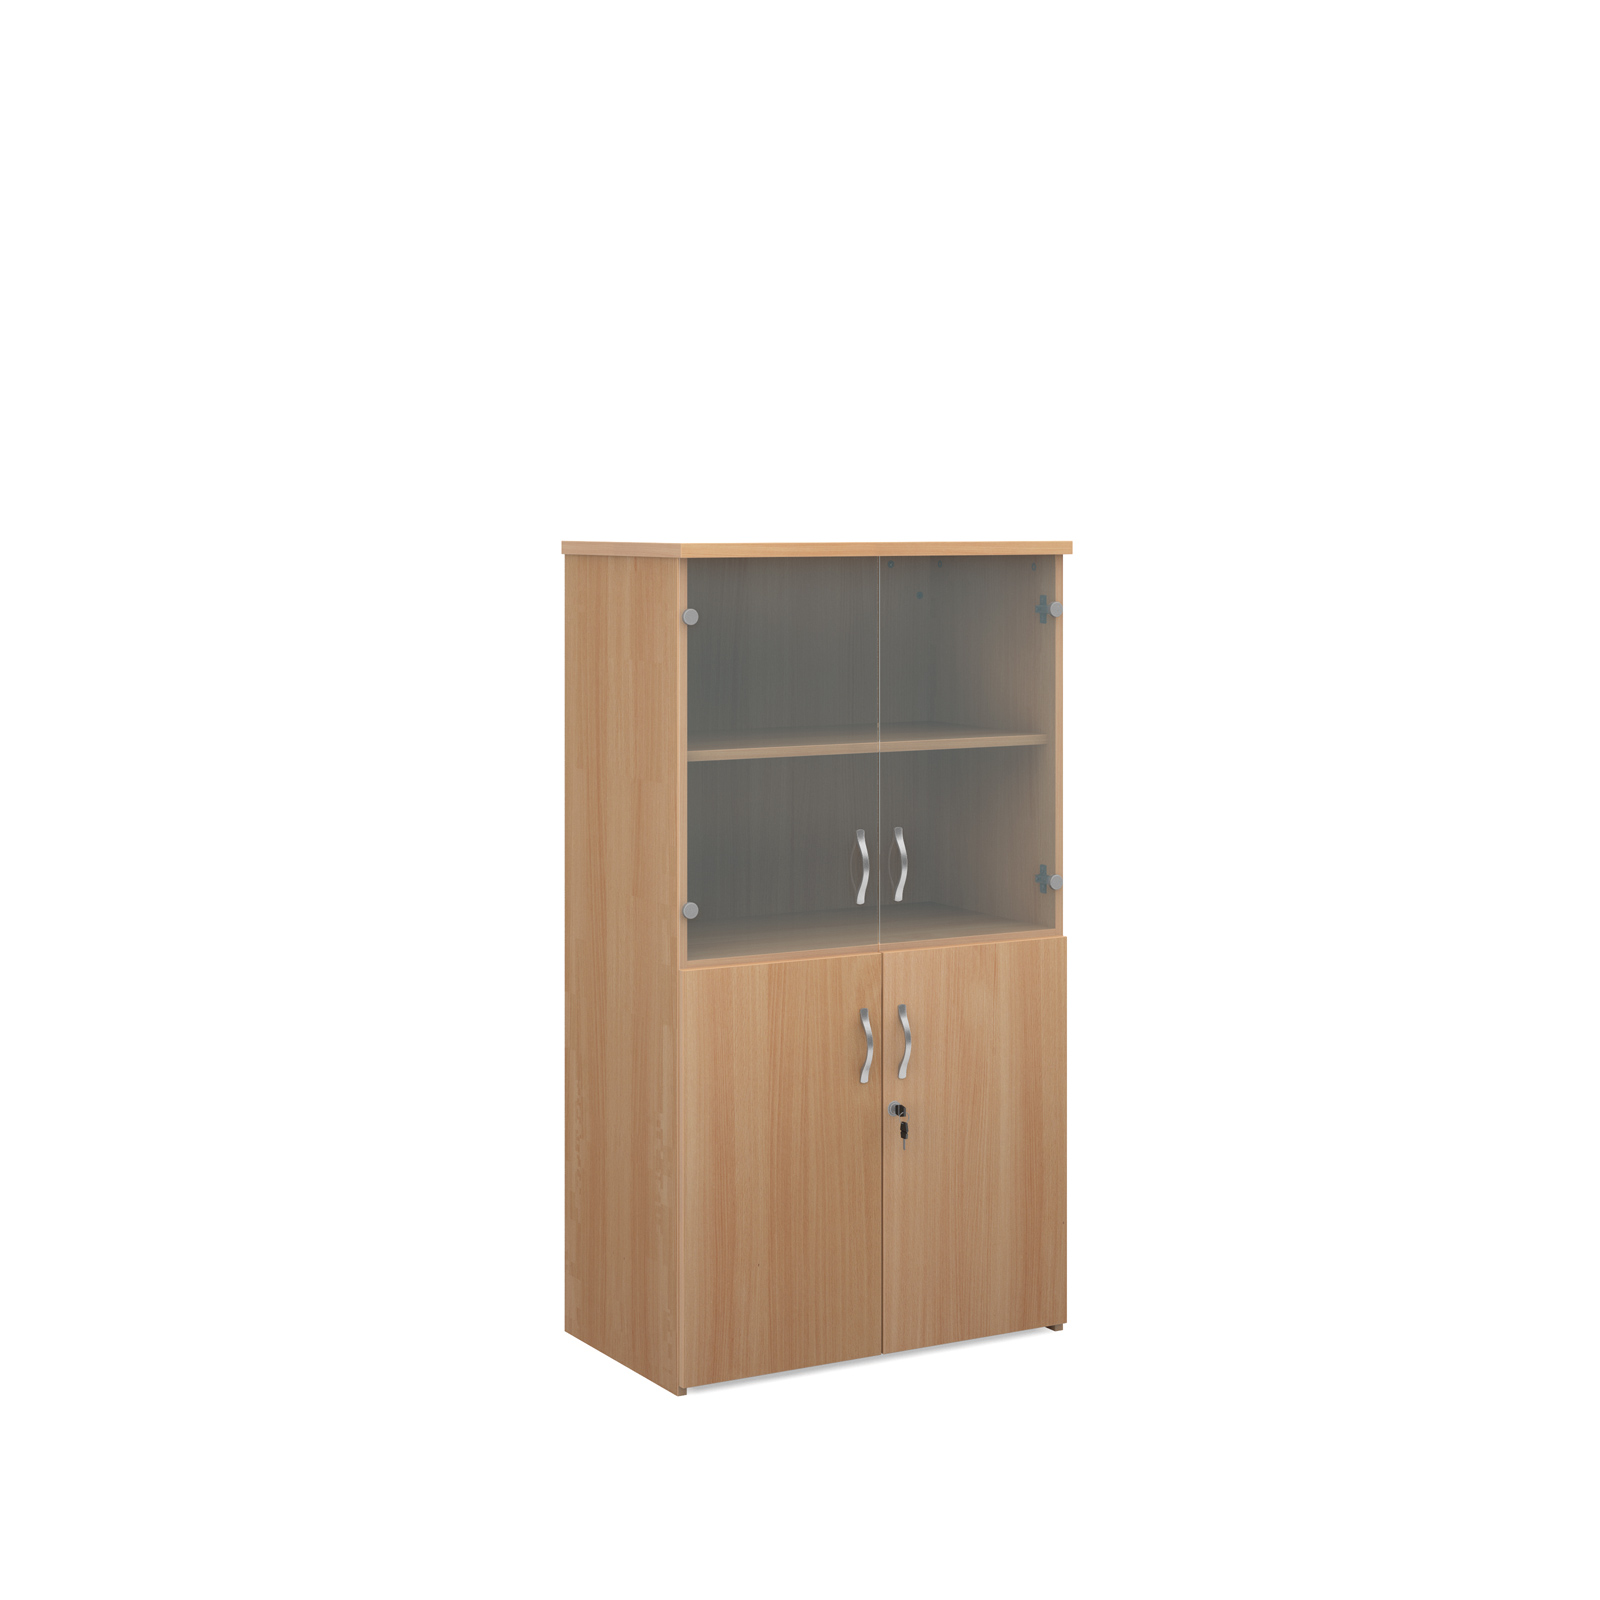 1440mm high combination unit with glass and wood doors in beech